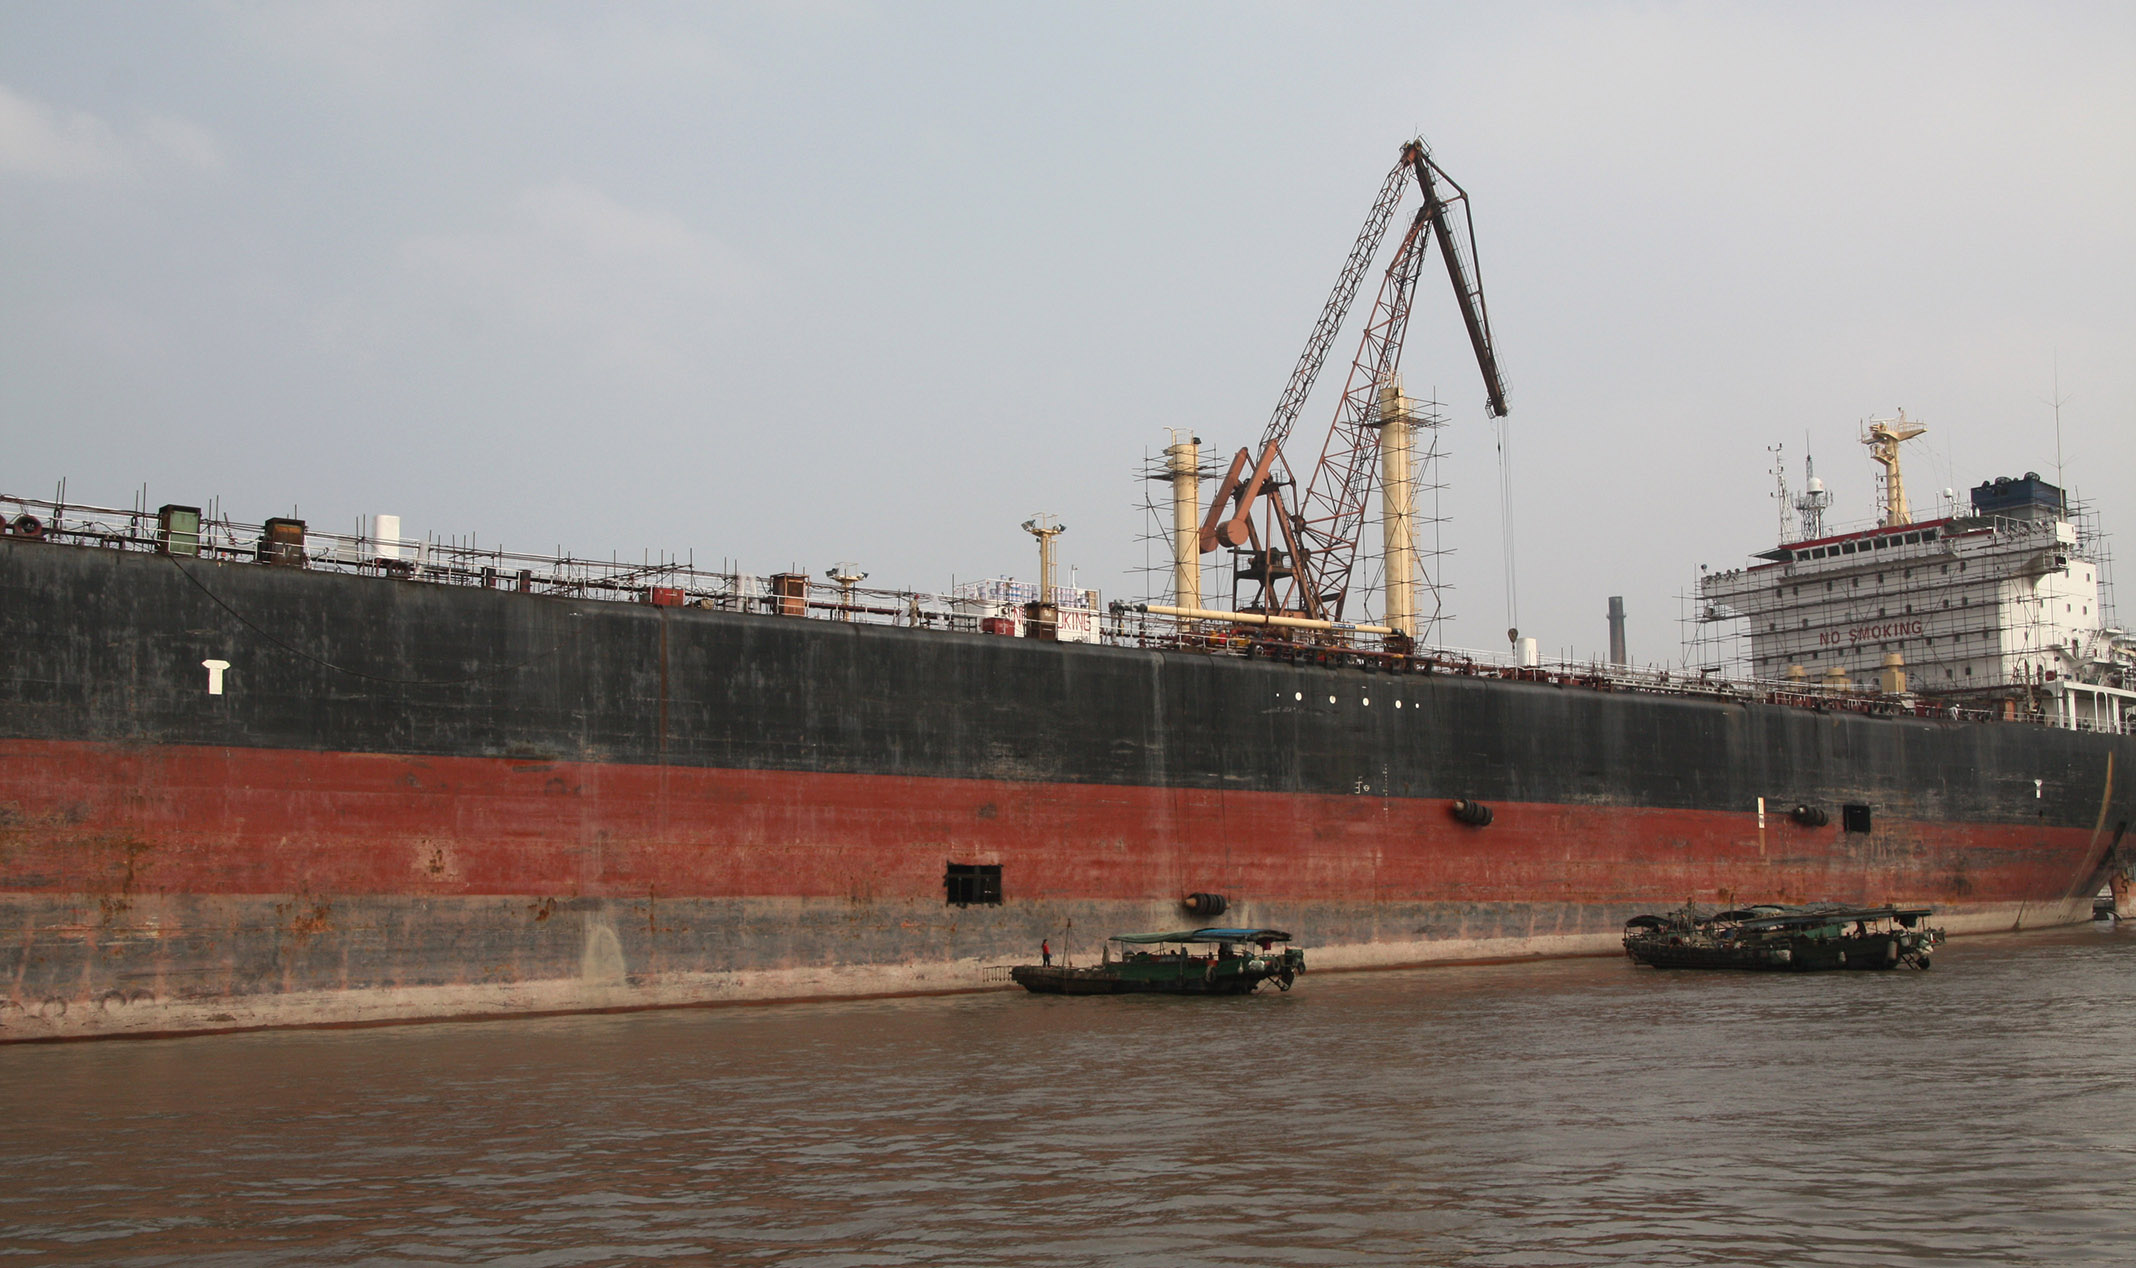 Boat_Other_Boats_03.jpg - Harbour: A tanker is being repared... This boats are huge!